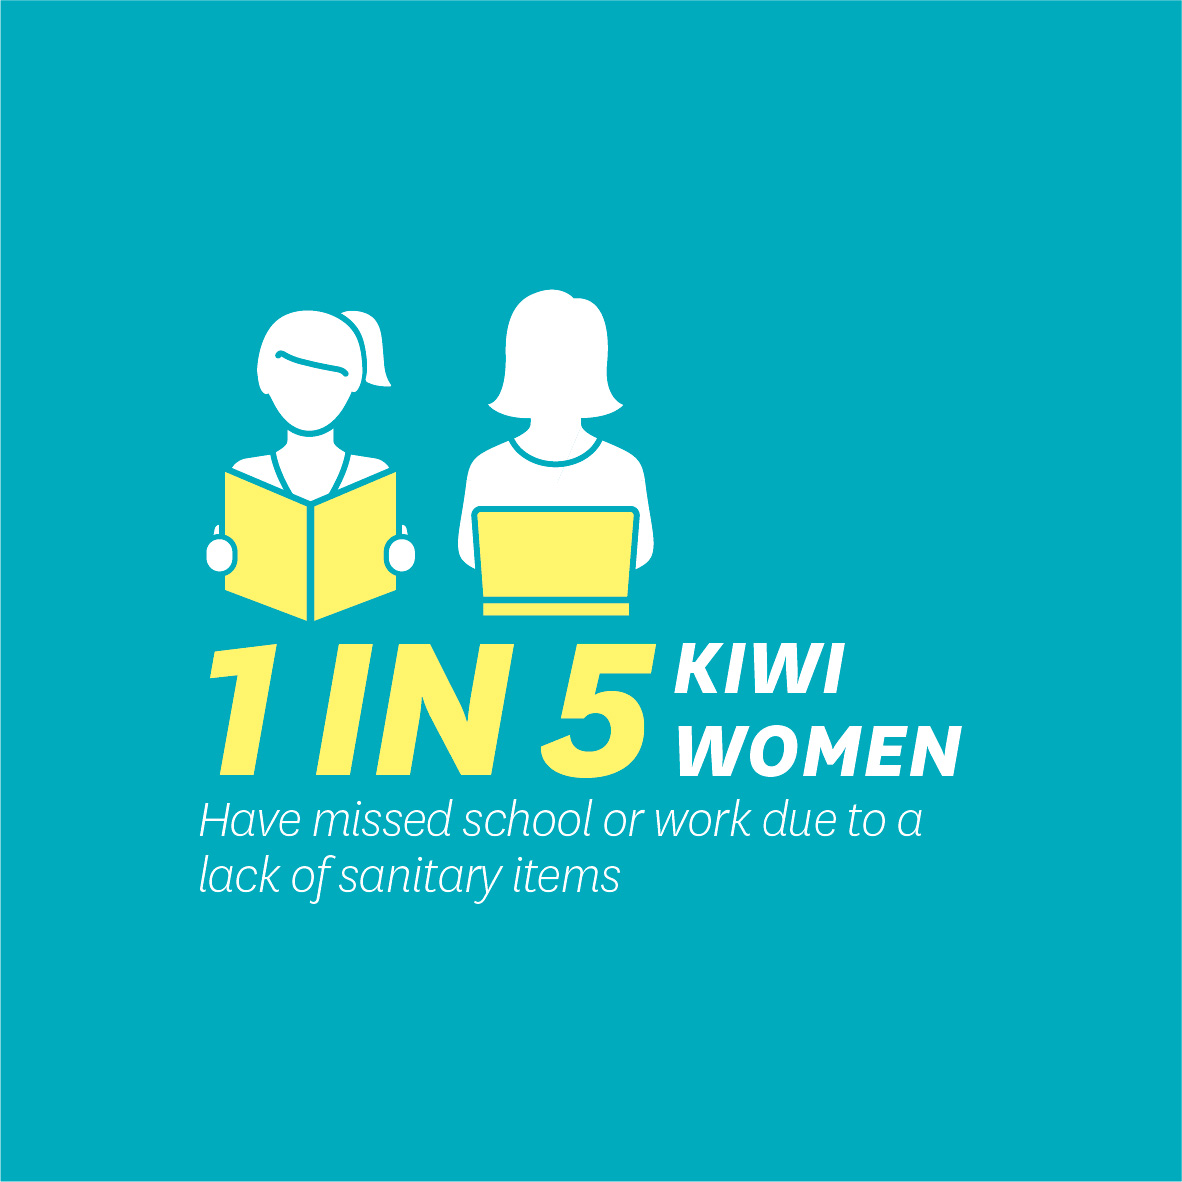 KCC0168_Period_Poverty_Infographic_1in5Women.jpg